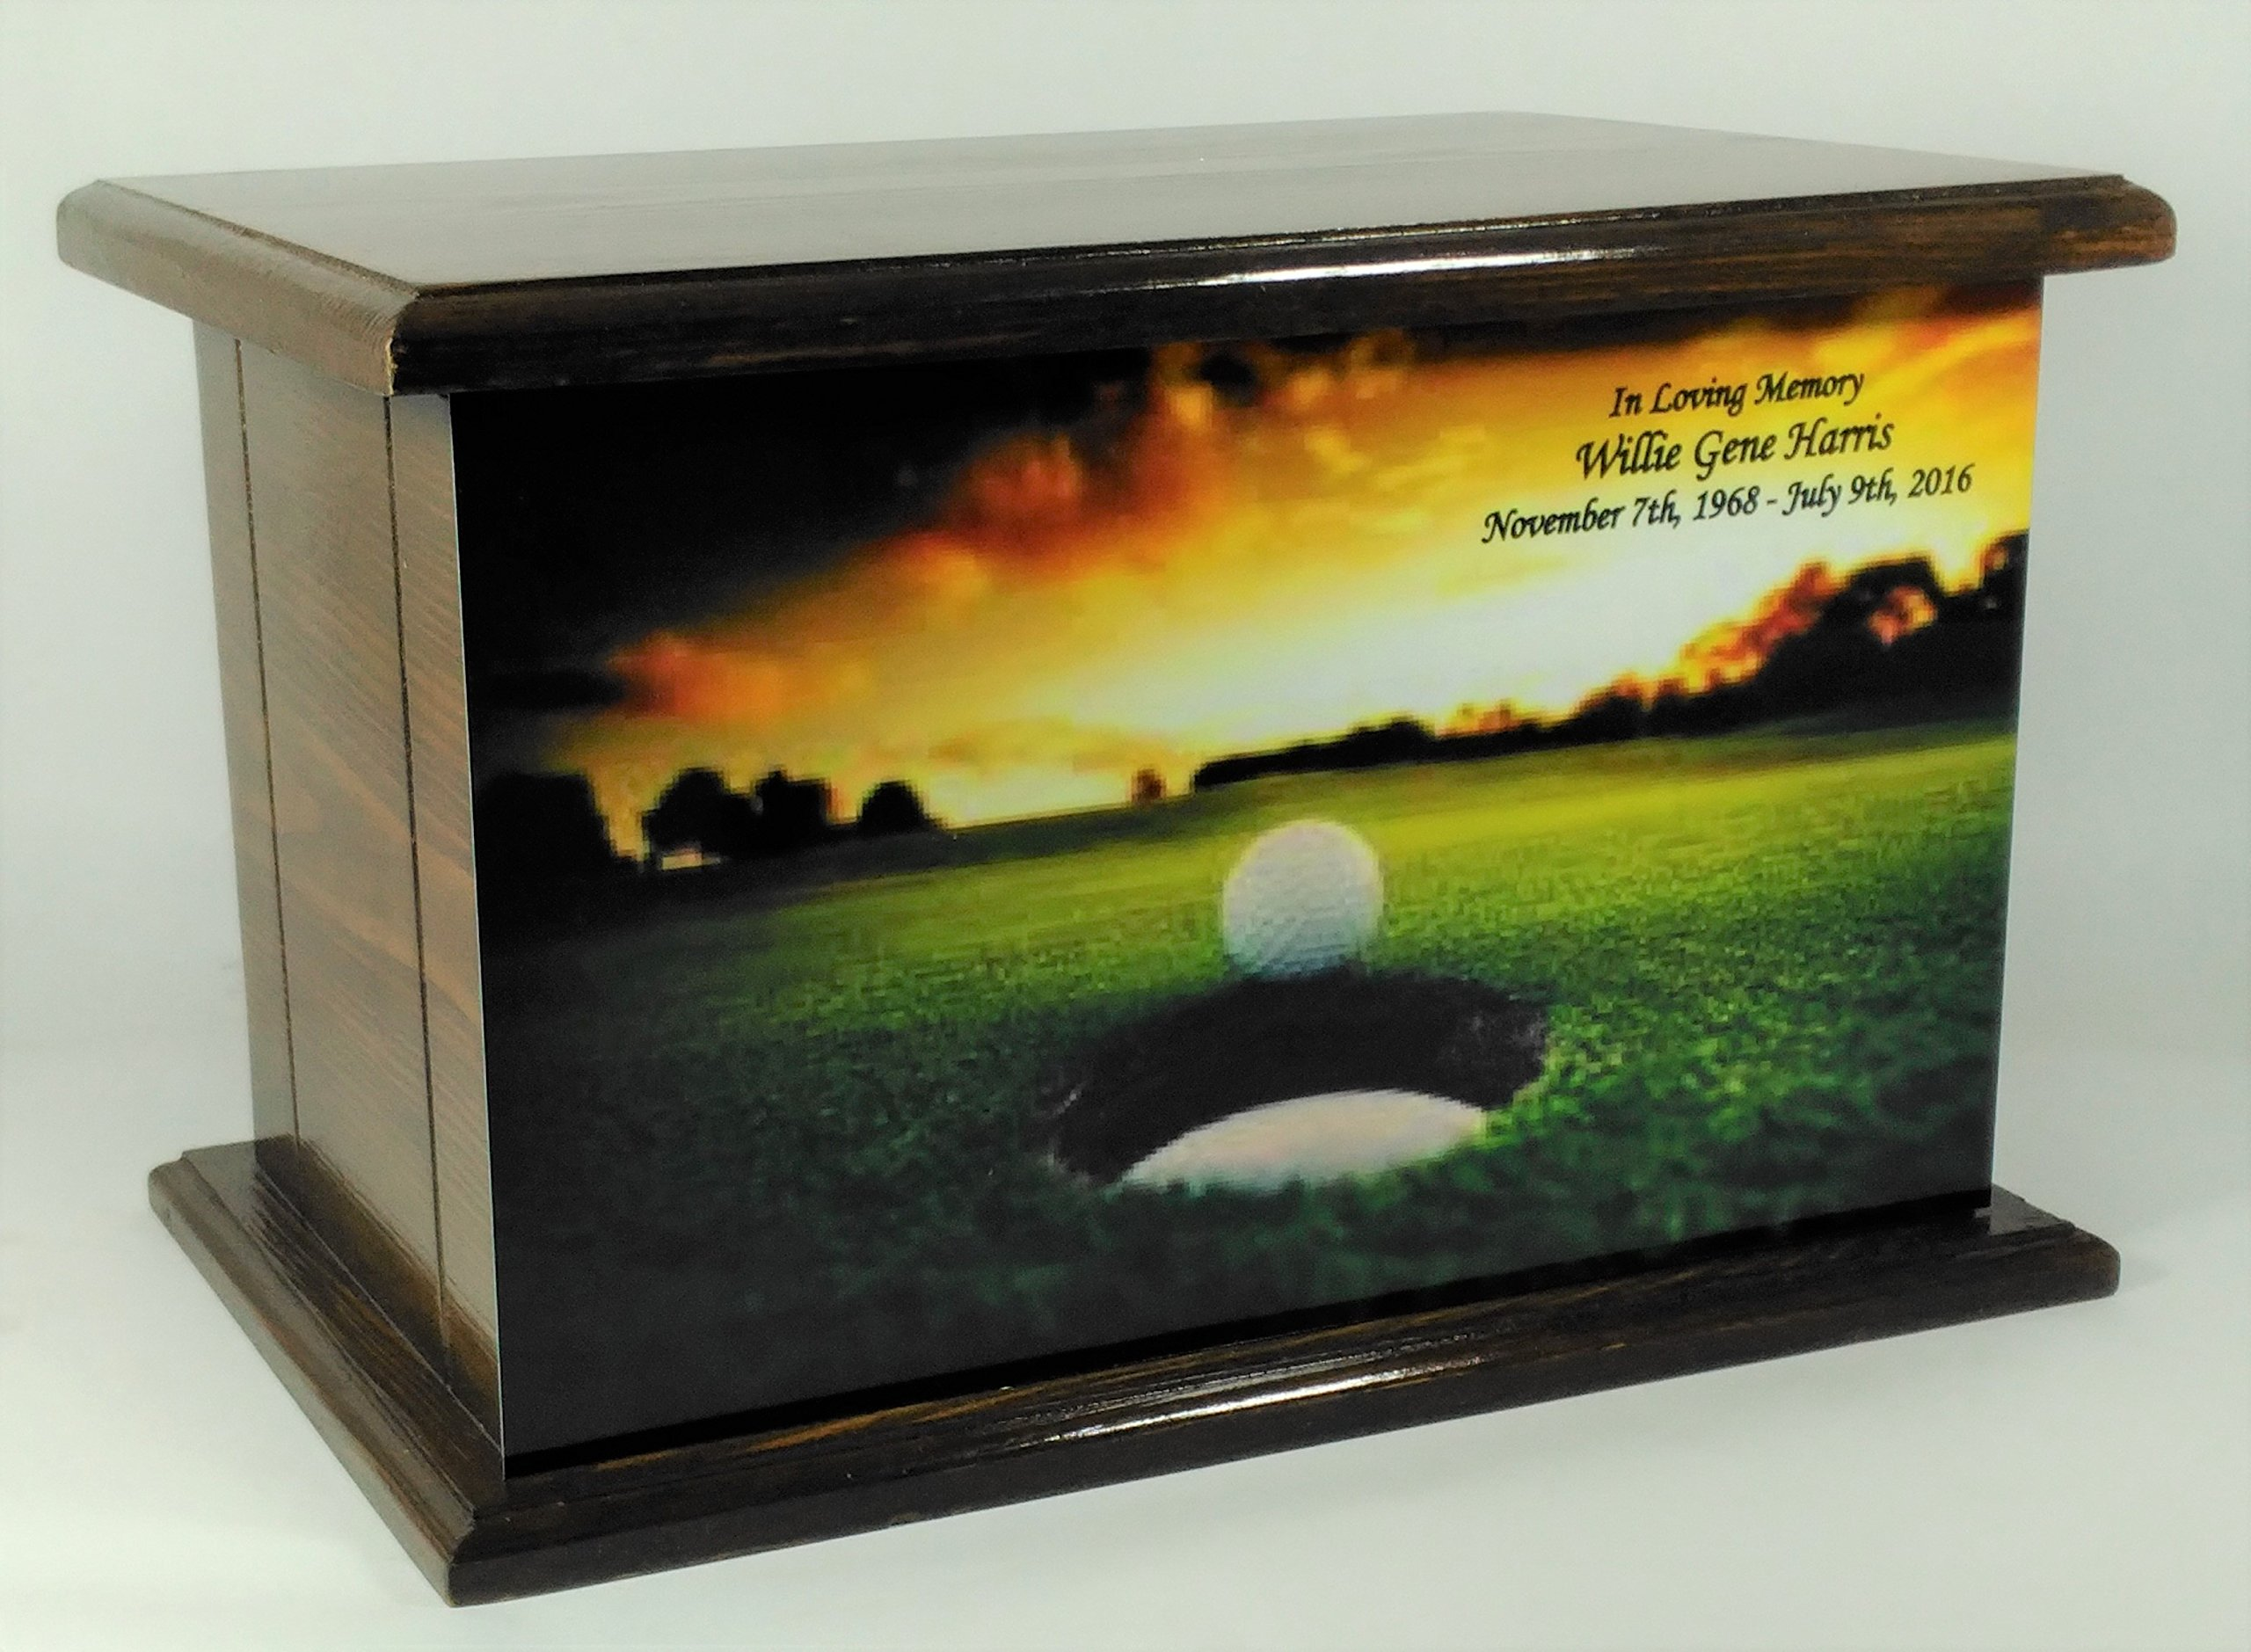 Cremation Urn, Wood Funeral Urn, Golf Wooden Urn with Personalized Engraving, Golfing